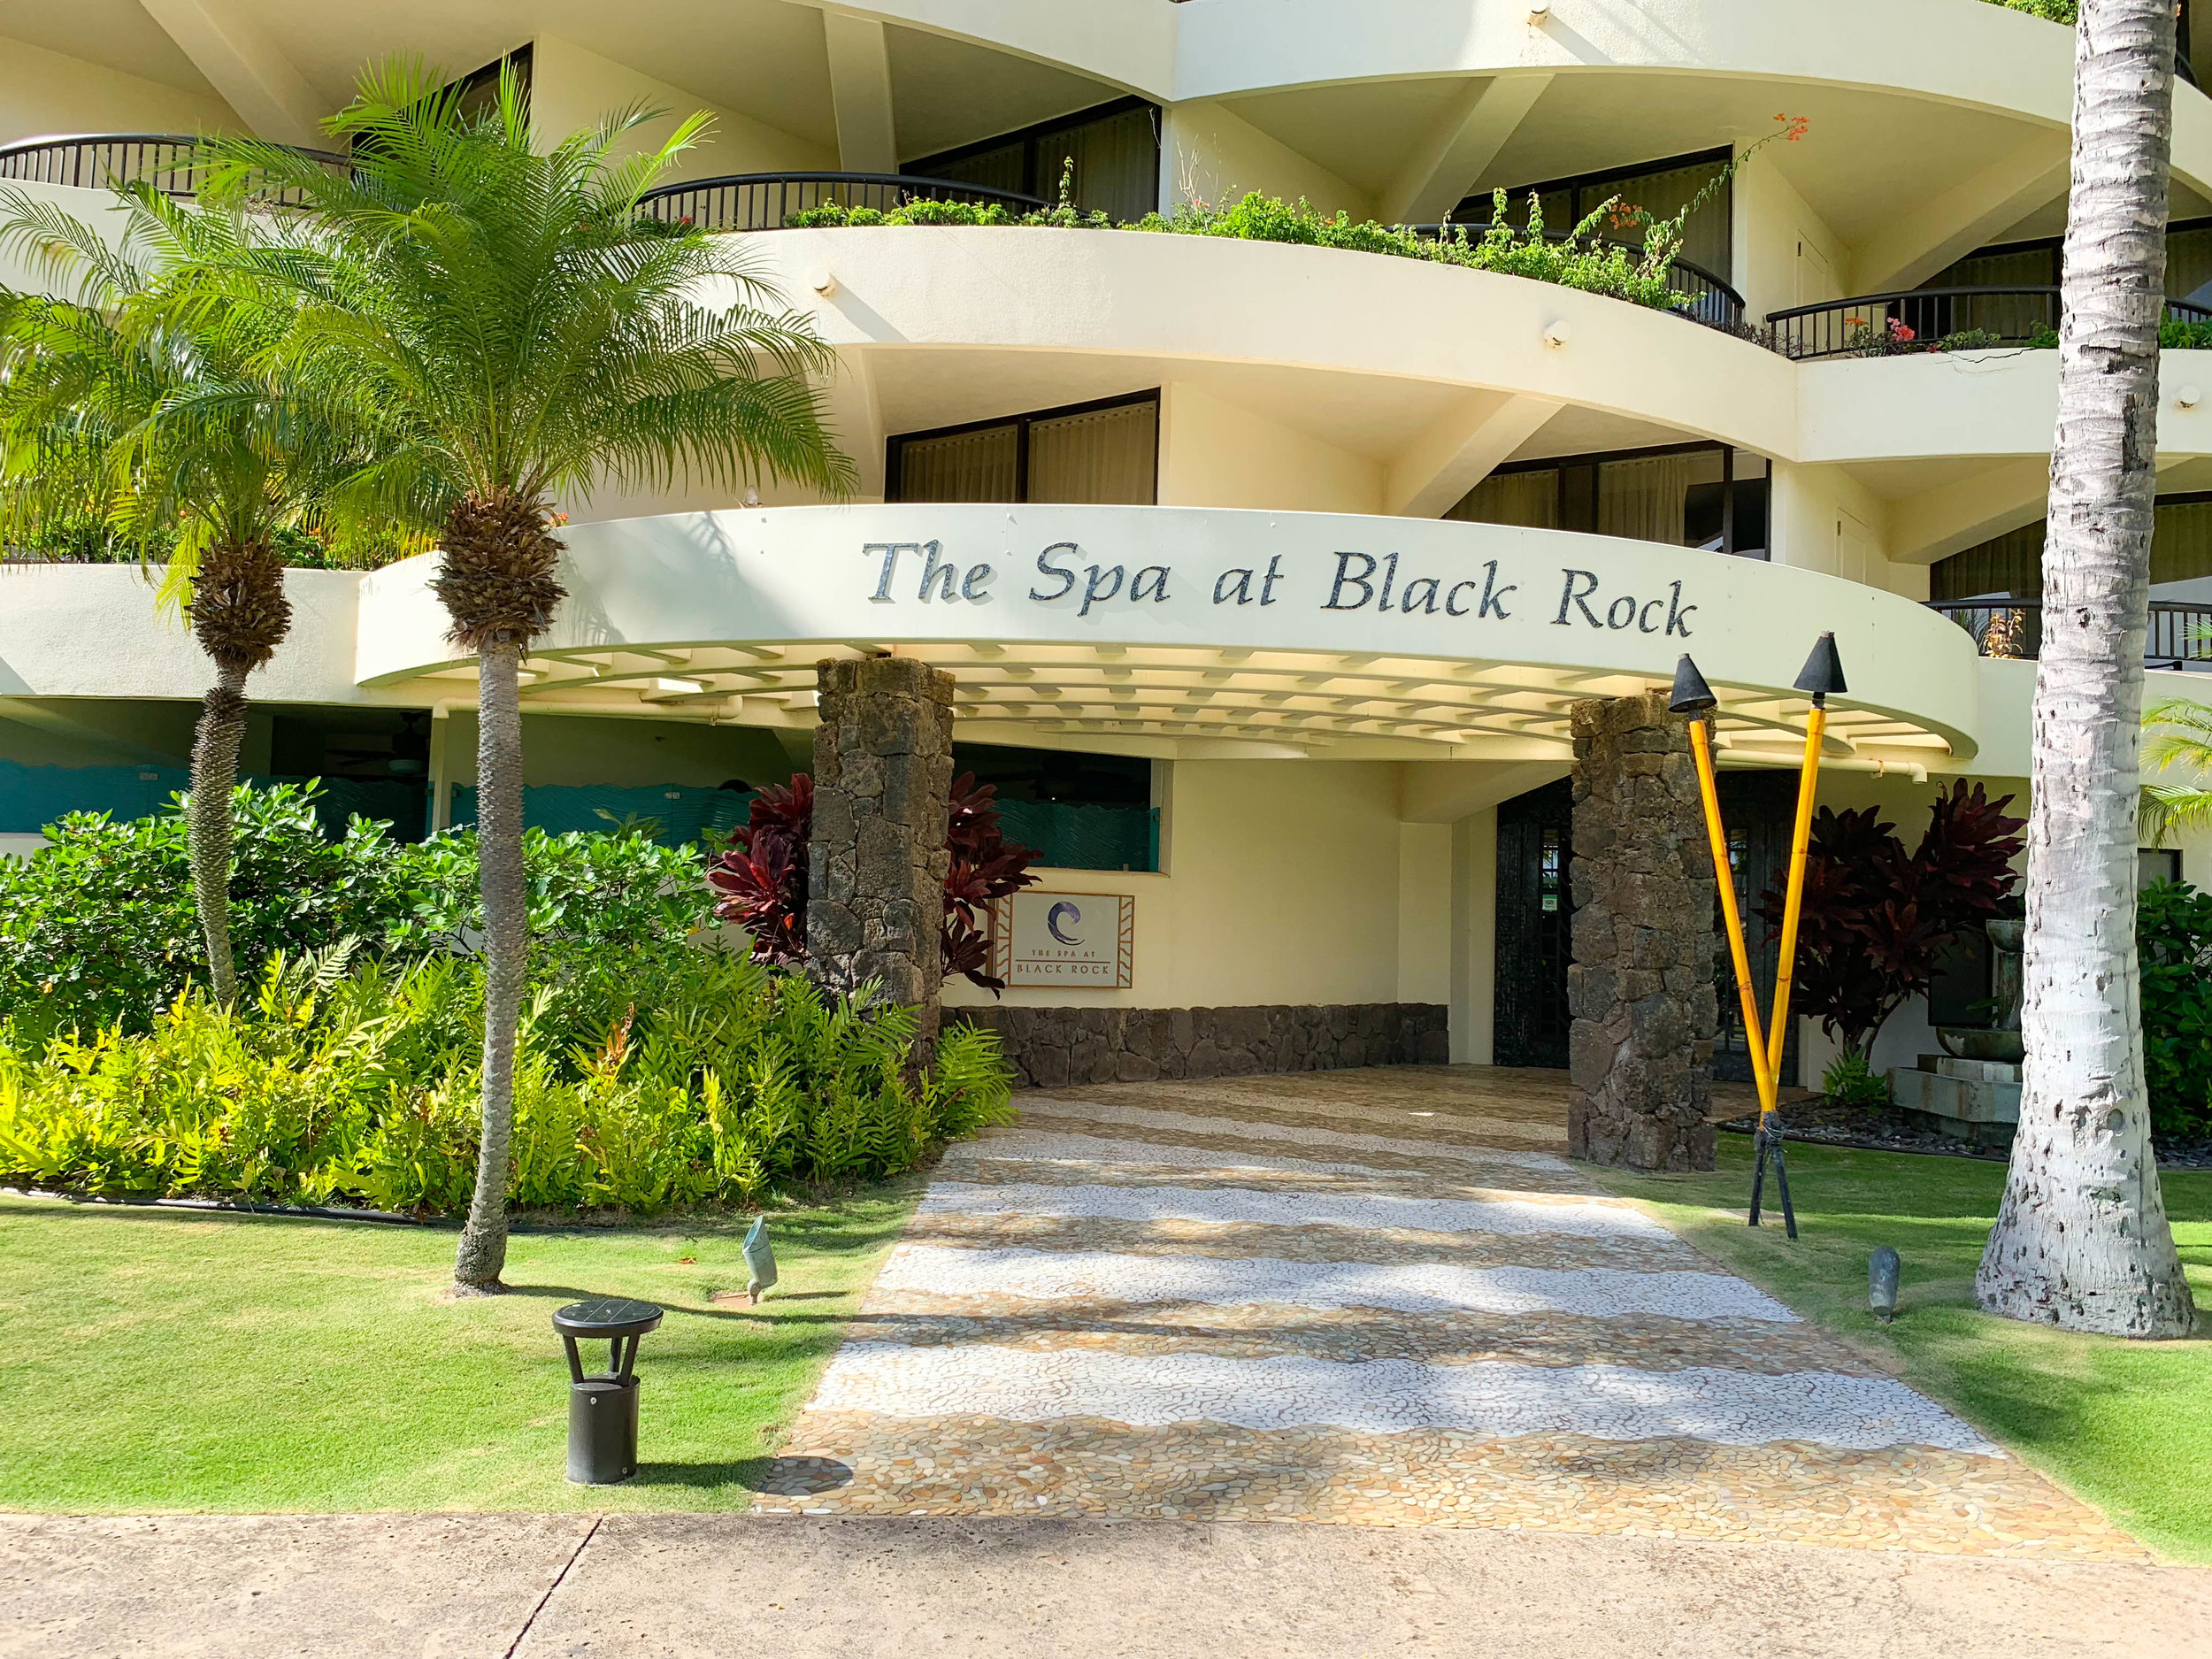 ENTRANCE TO THE SPA AT BLACK ROCK